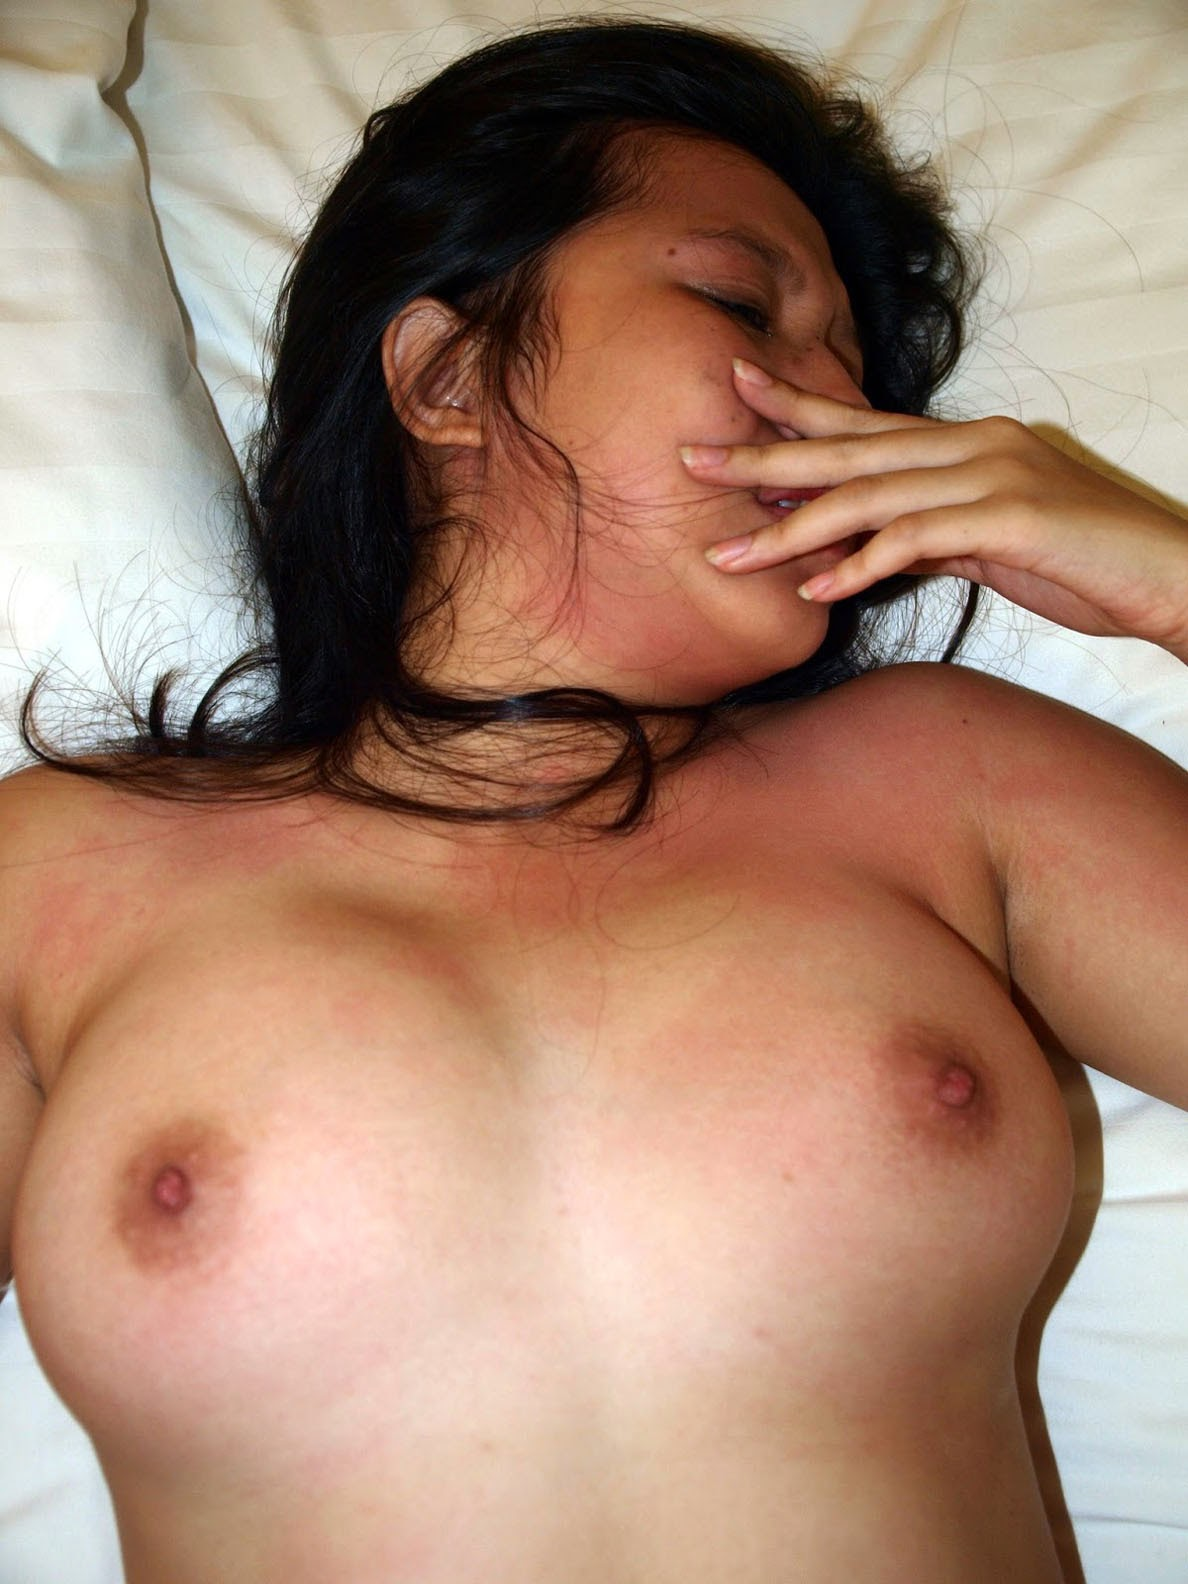 Already Nude cute nepali young girls